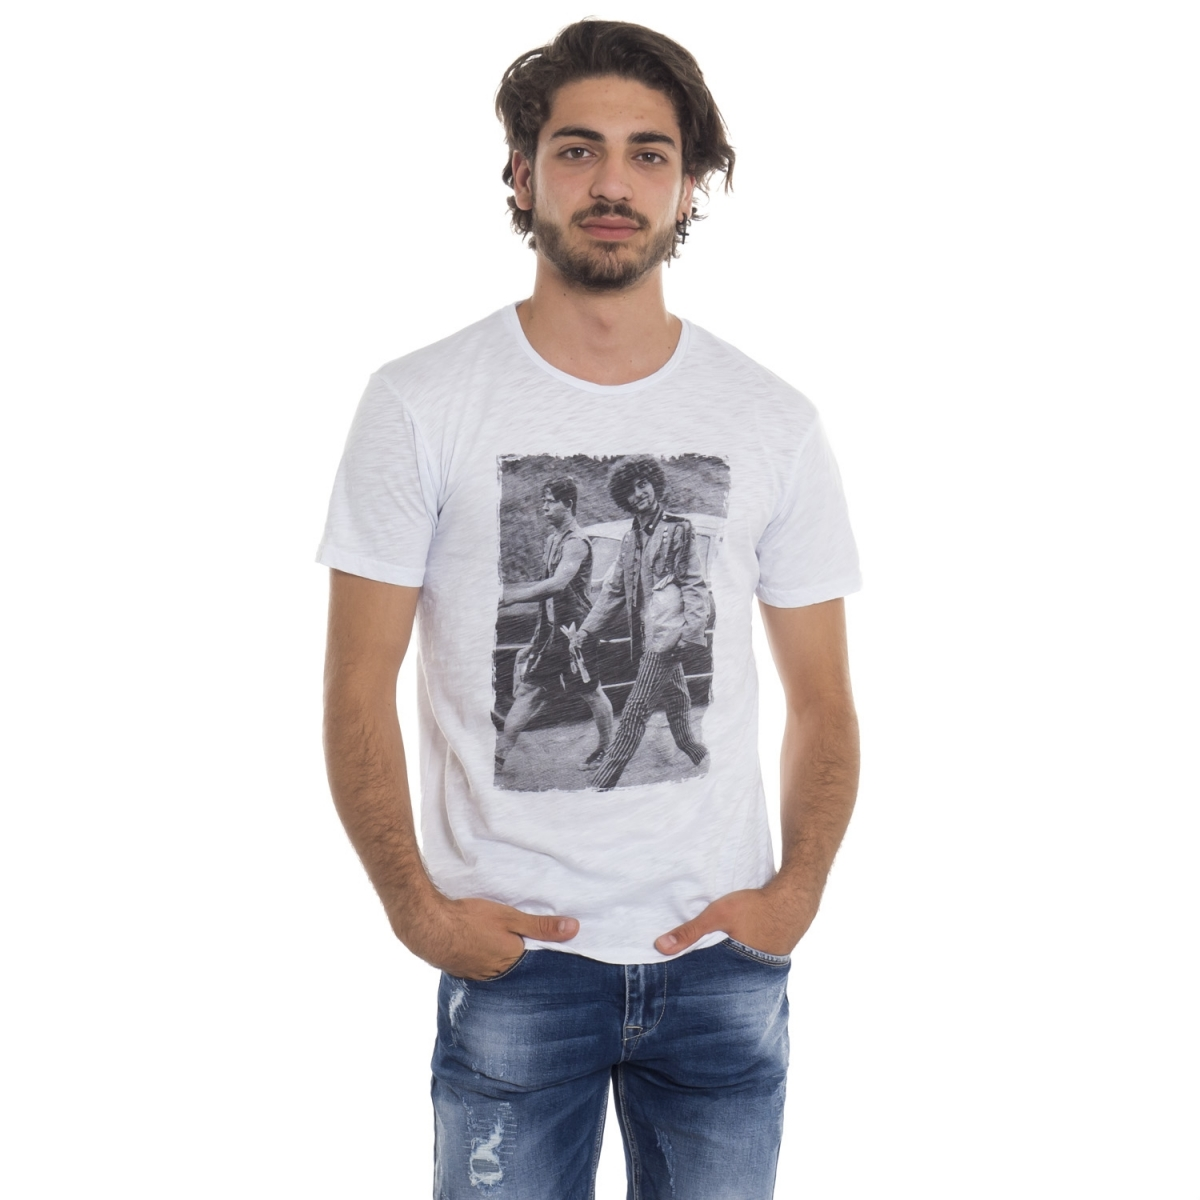 clothing T-shirt men T-Shirt LP23-2 LANDEK PARK Cafedelmar Shop